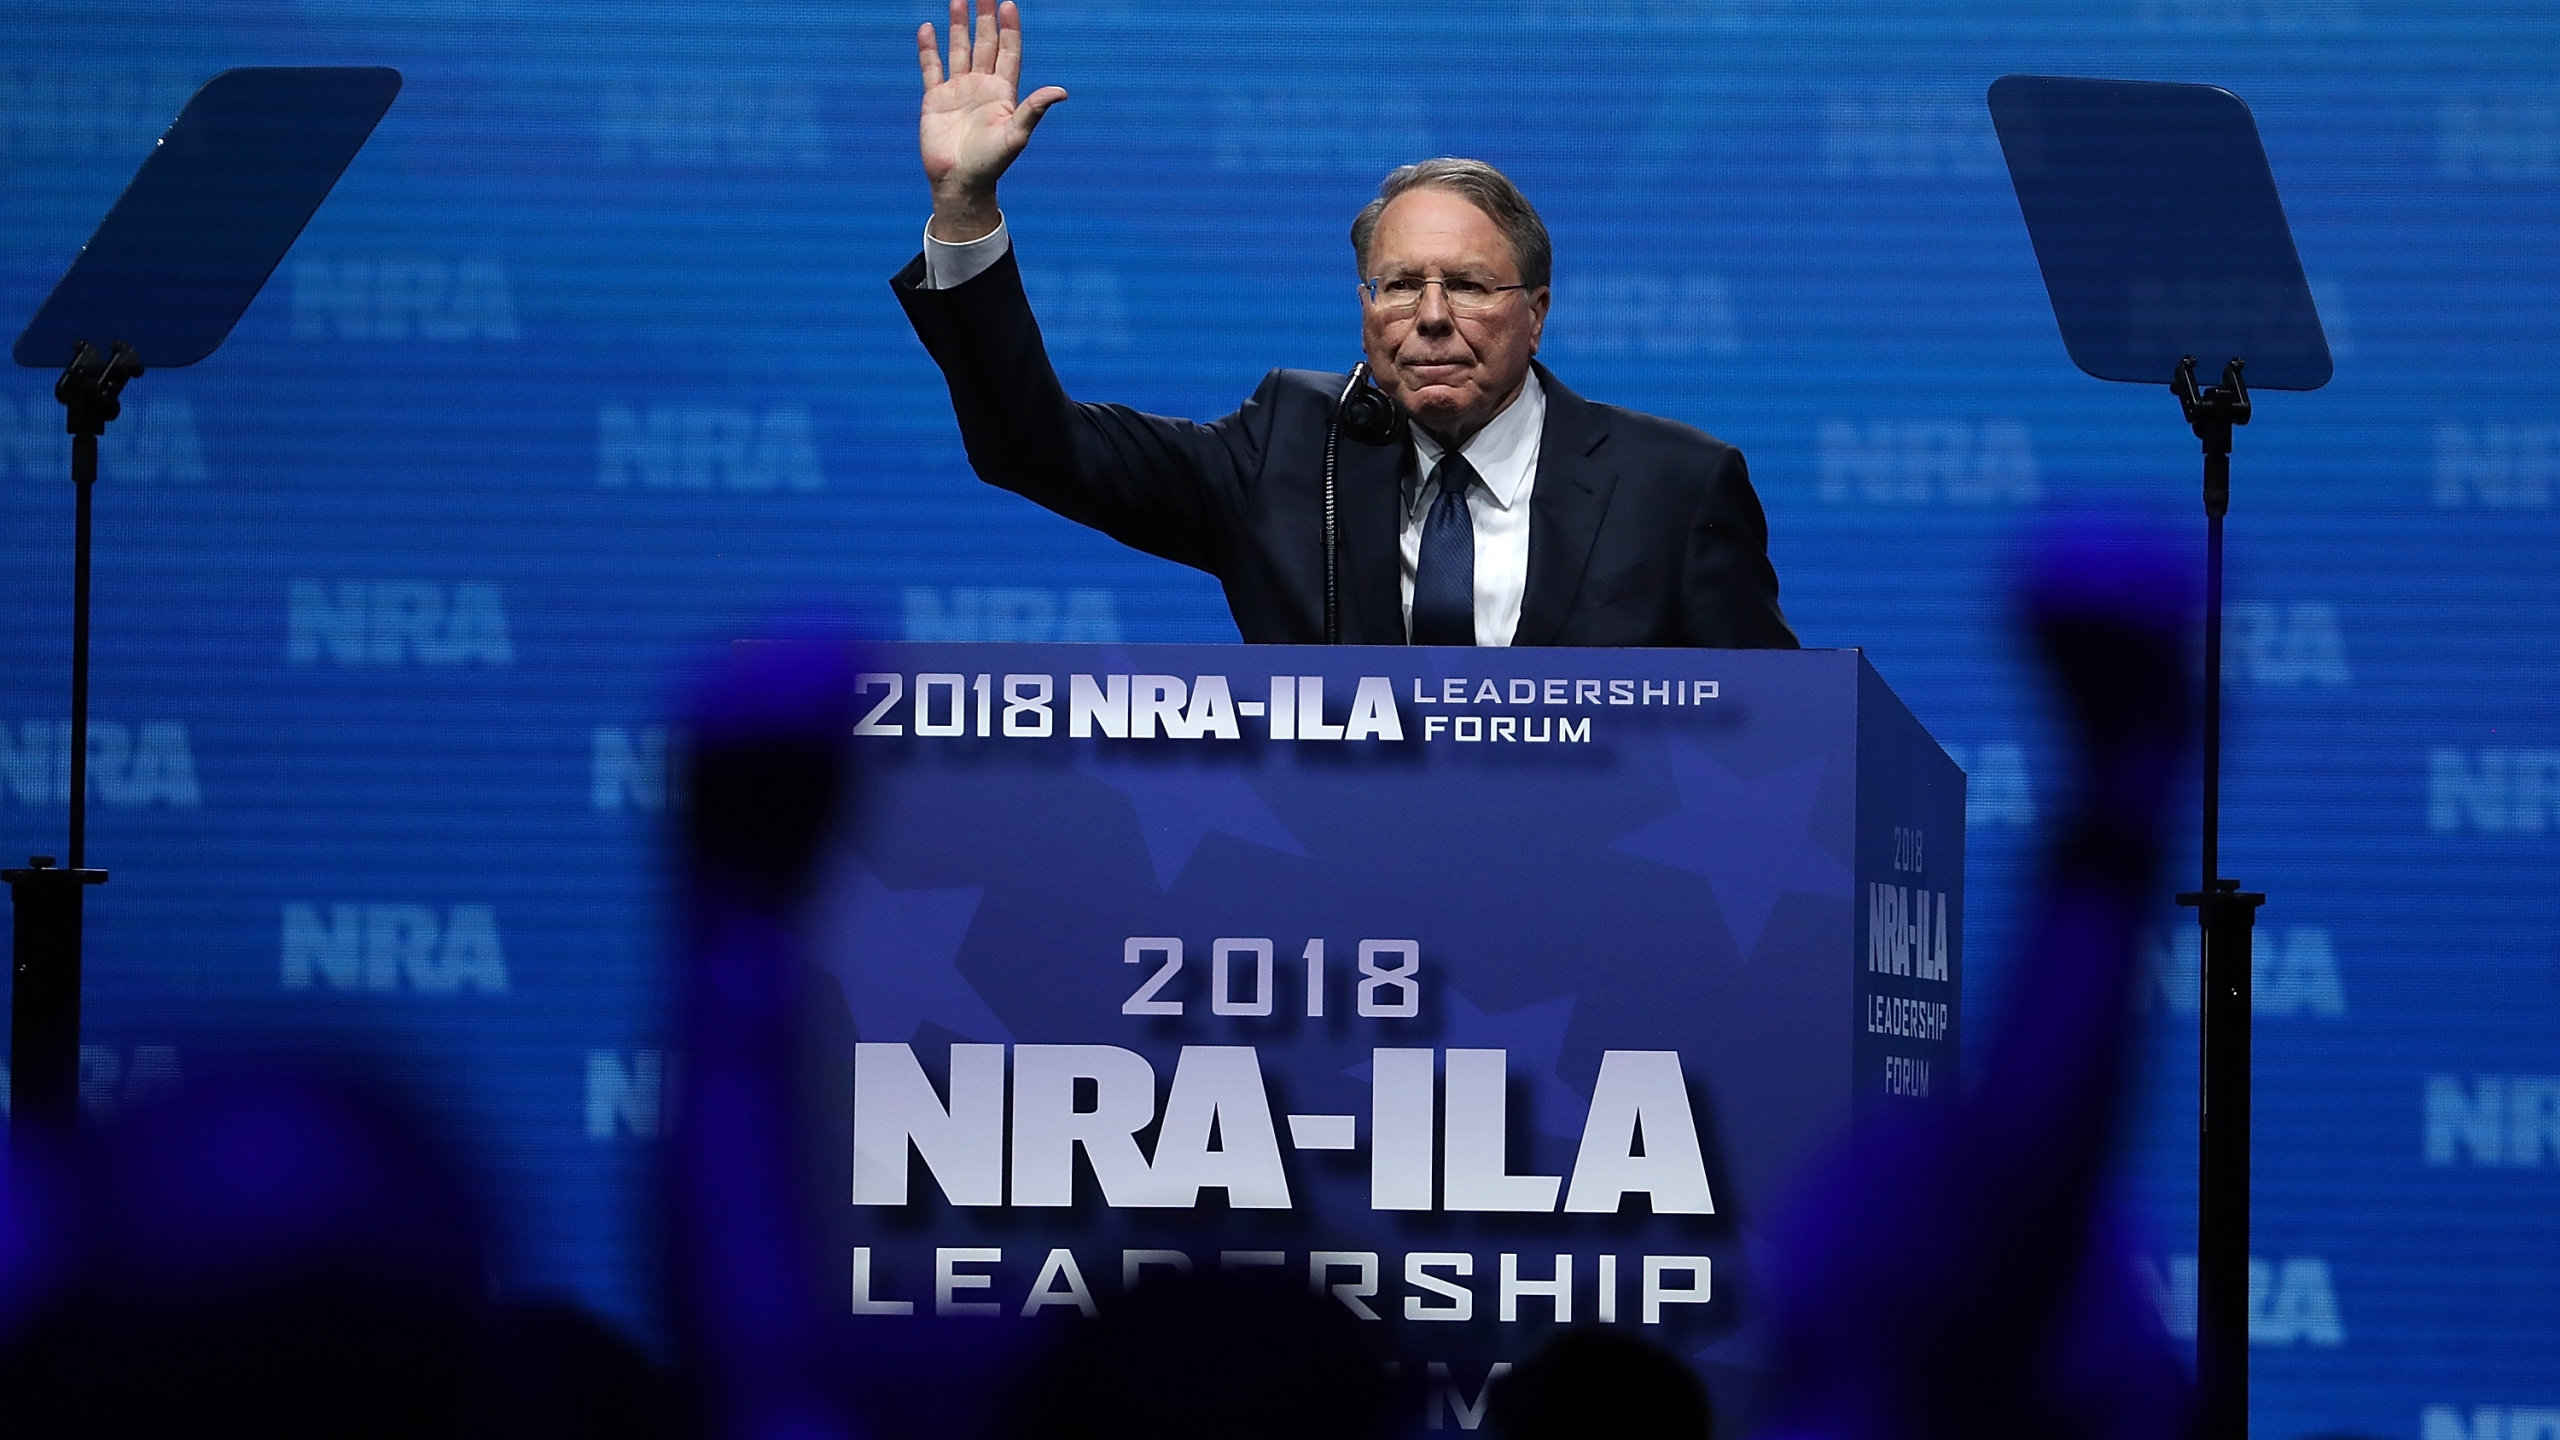 NRA Executive Vice President